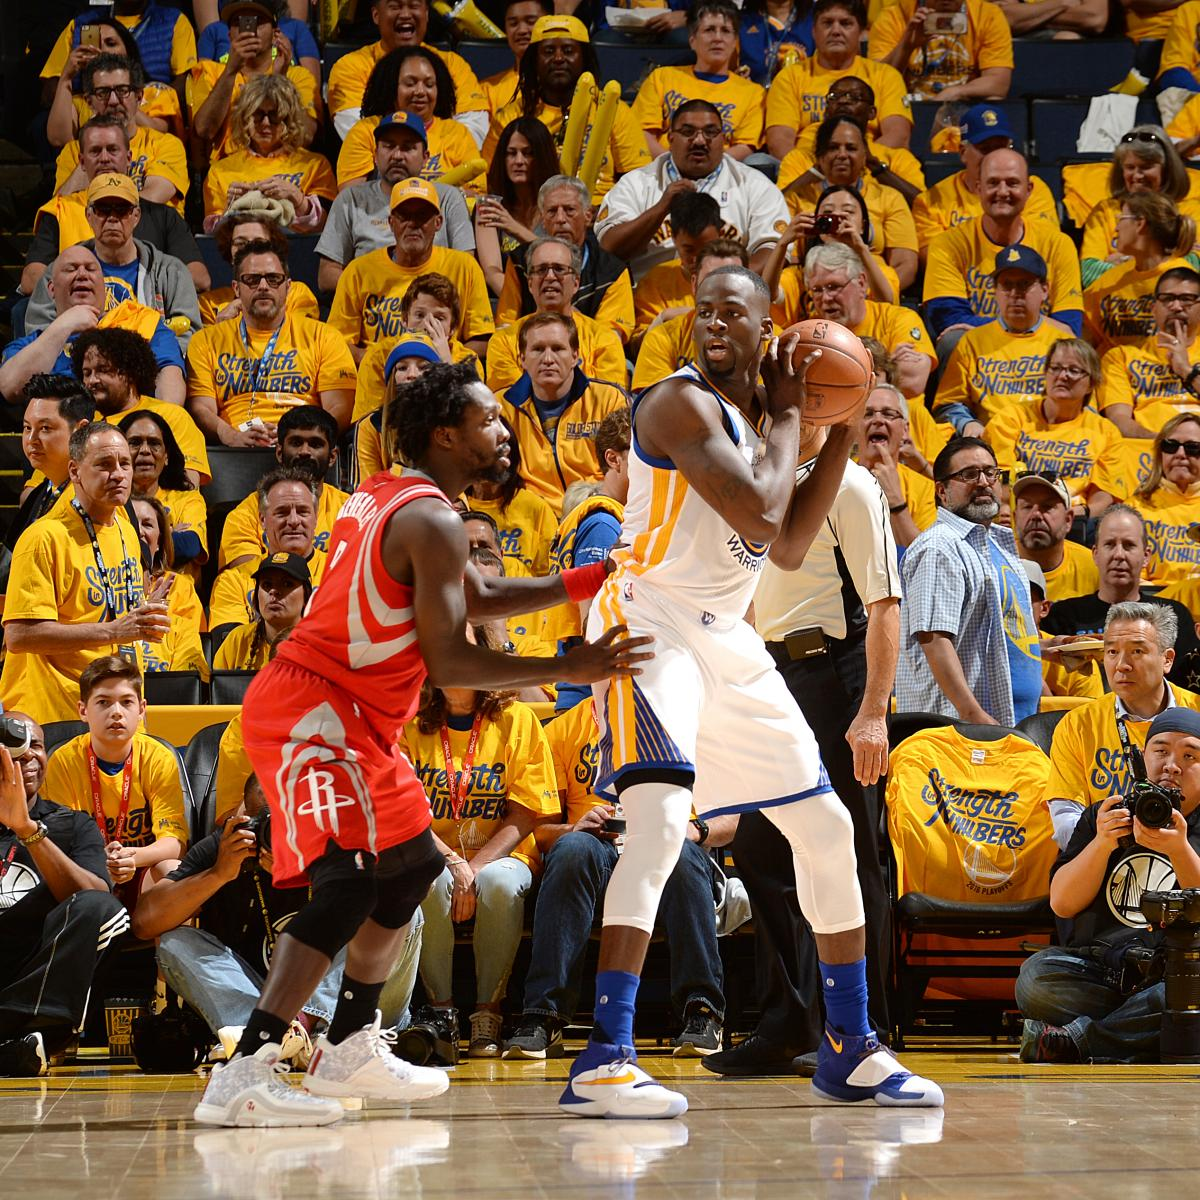 Warriors Come Out To Play Bleacher Report: Houston Rockets Vs. Golden State Warriors: Live Score